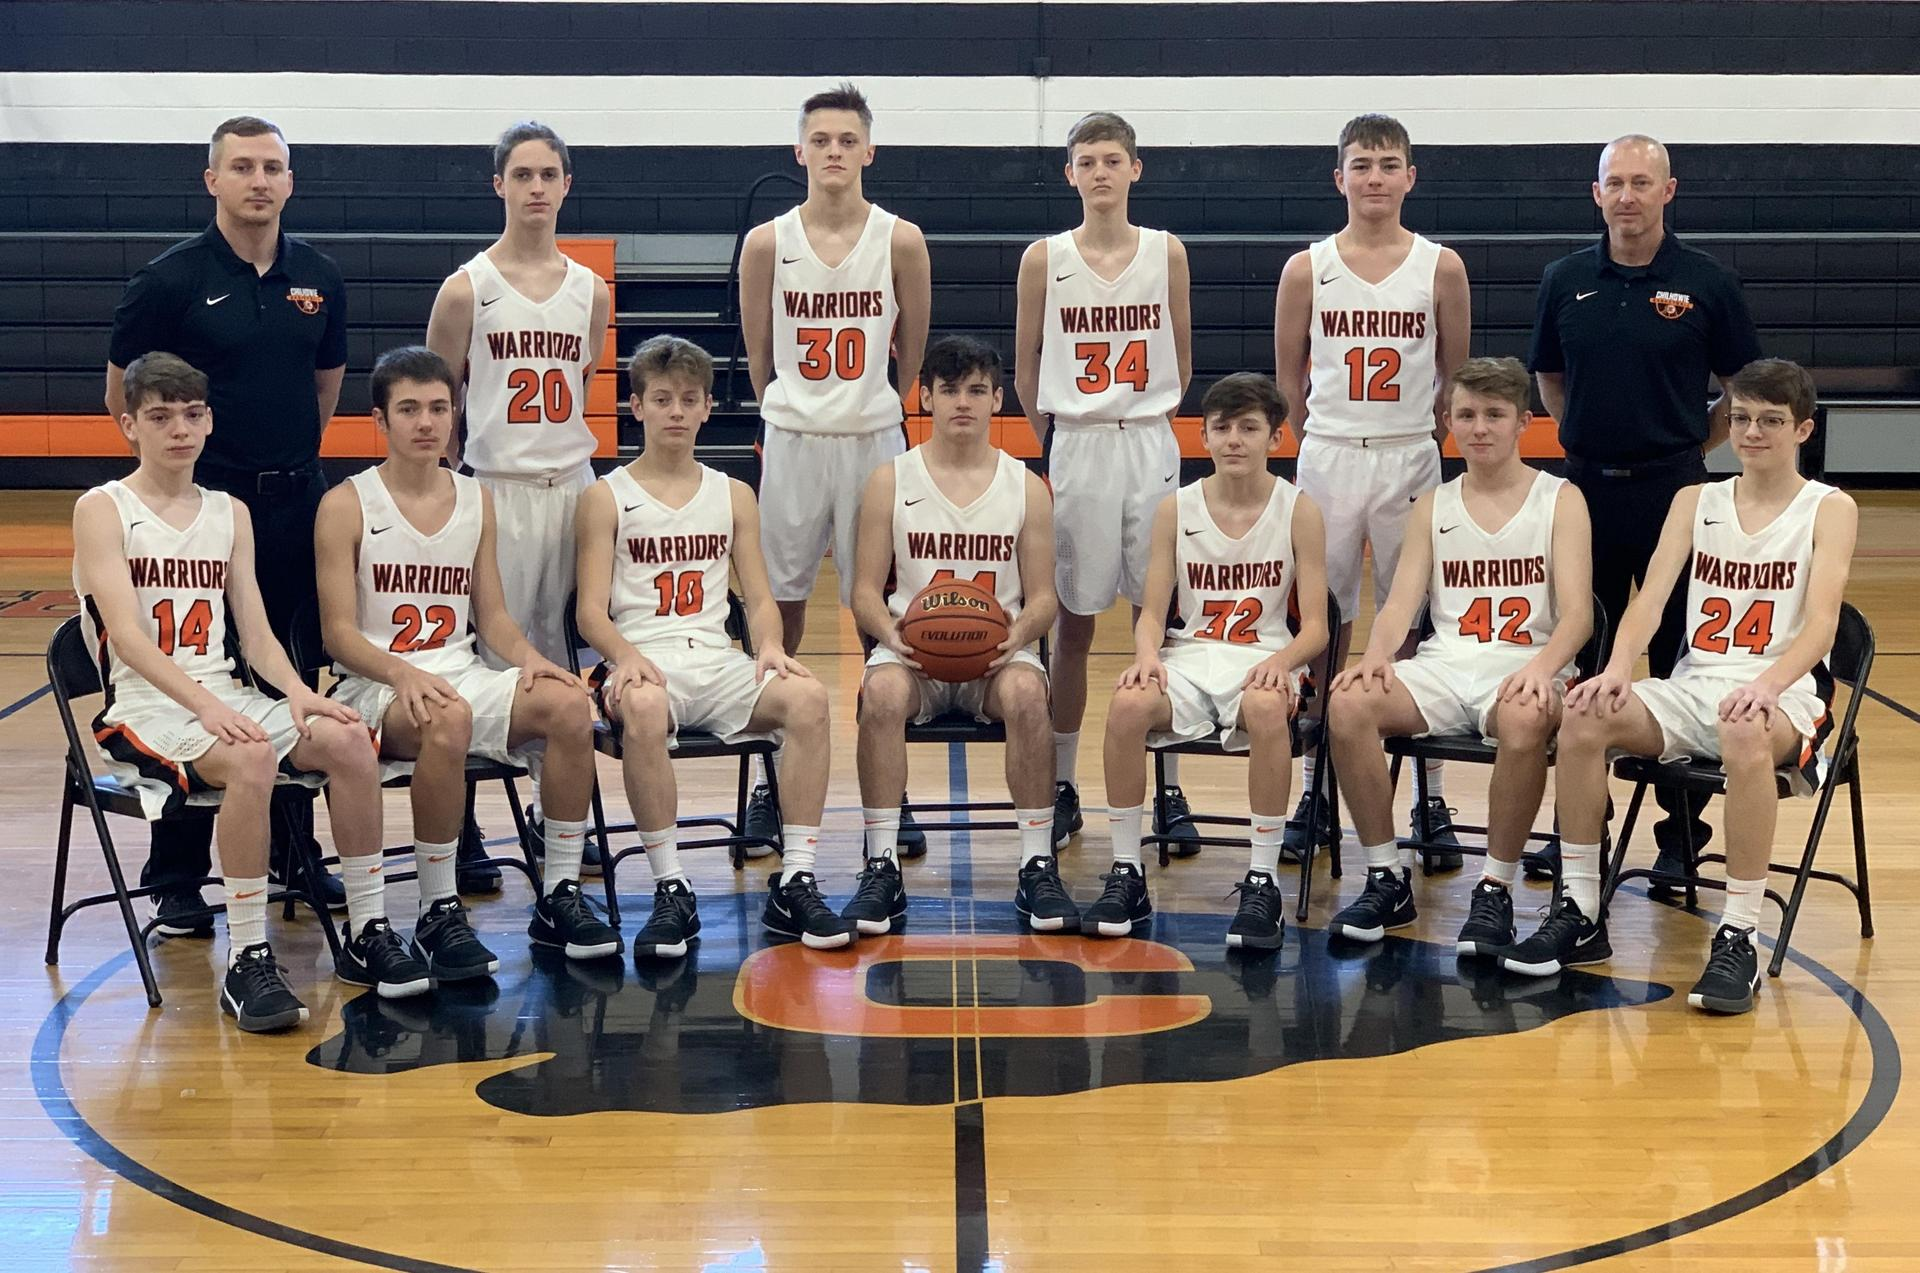 JV Boys Basketball Team 2019-2020